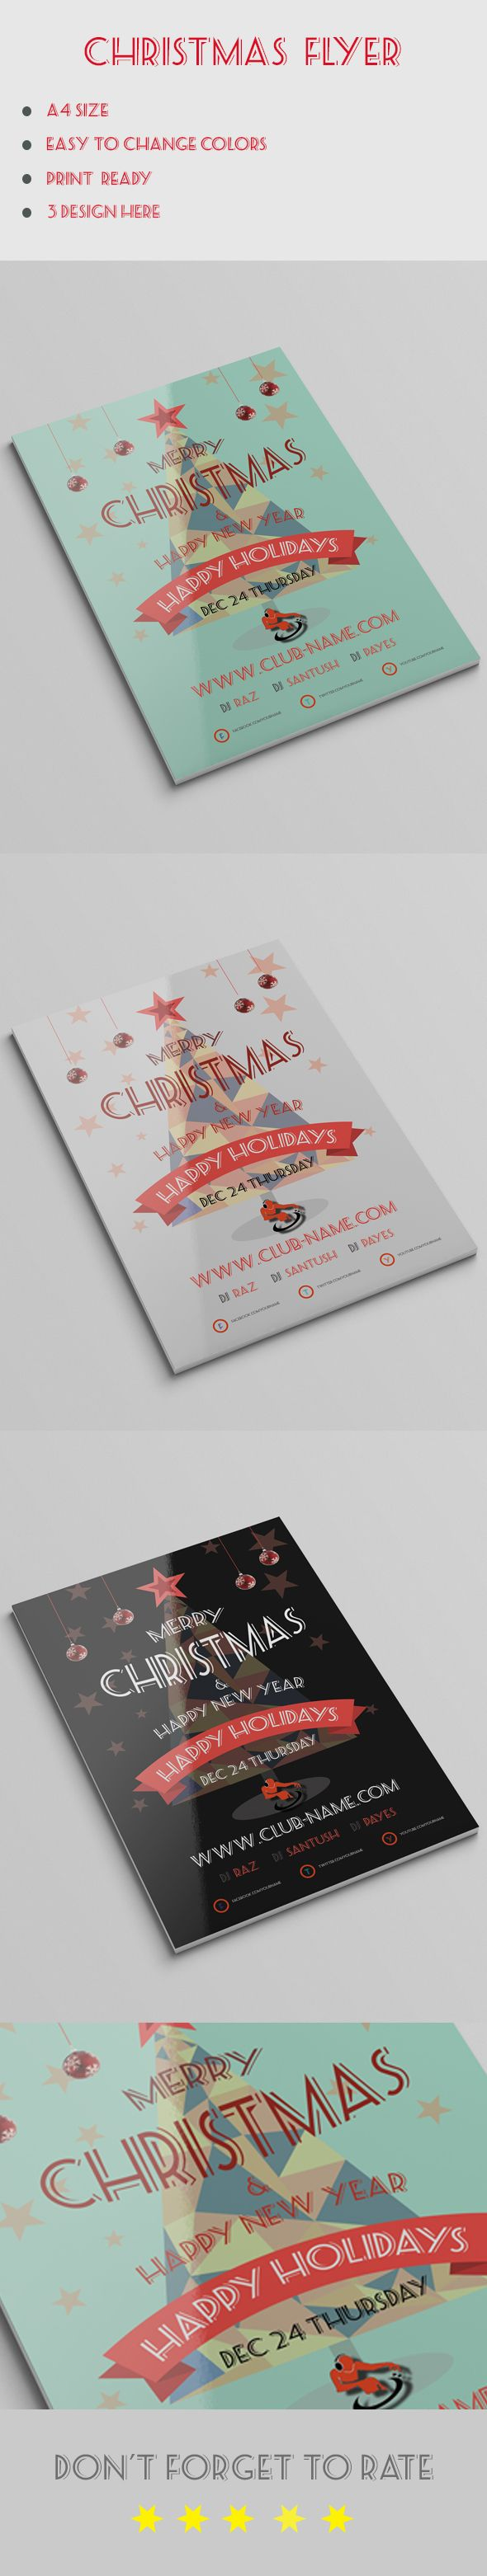 15+ Best Free Christmas Flyer Templates  http://www.byteswire.com/best-free-christmas-flyer-templates/